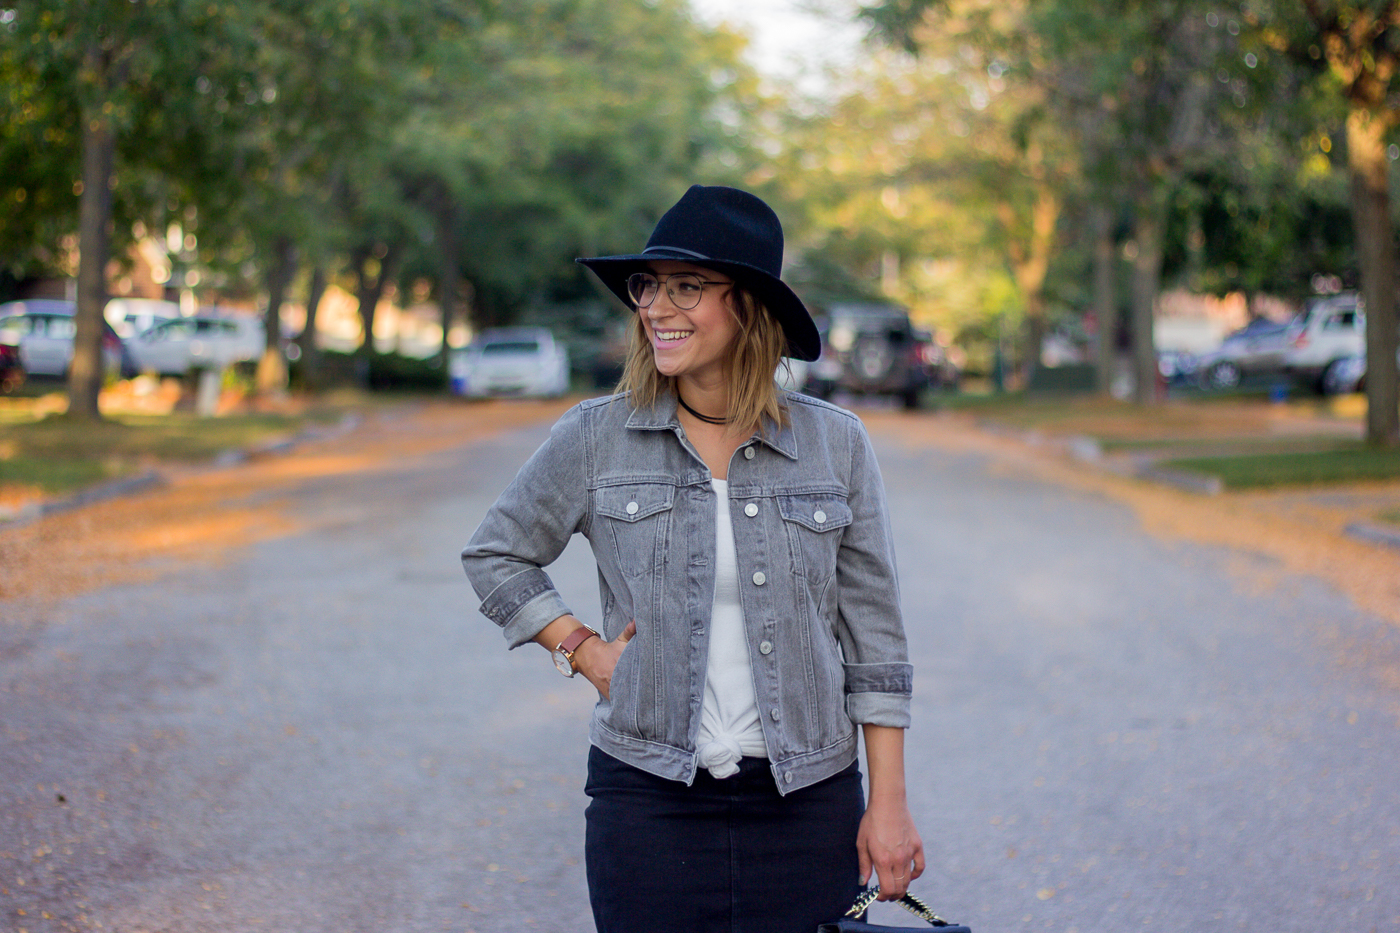 Petite fashion blogger, Jackie Goldhar, wearing the Joseph Marc Observation Aviator glasses from Clearly and a denim jacket from Gap for the fall